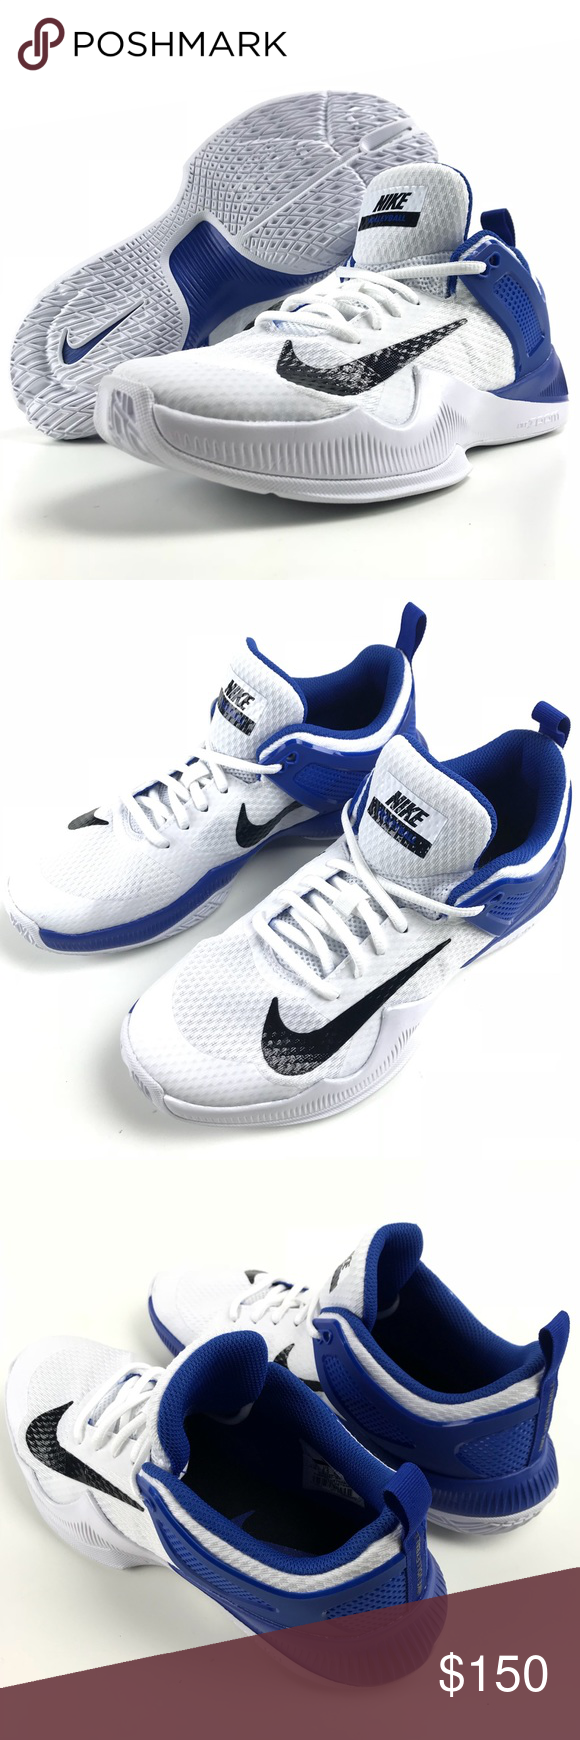 Nike Women S Air Zoom Hyperace Volleyball Shoes Volleyball Shoes Nike Women Blue Shoes